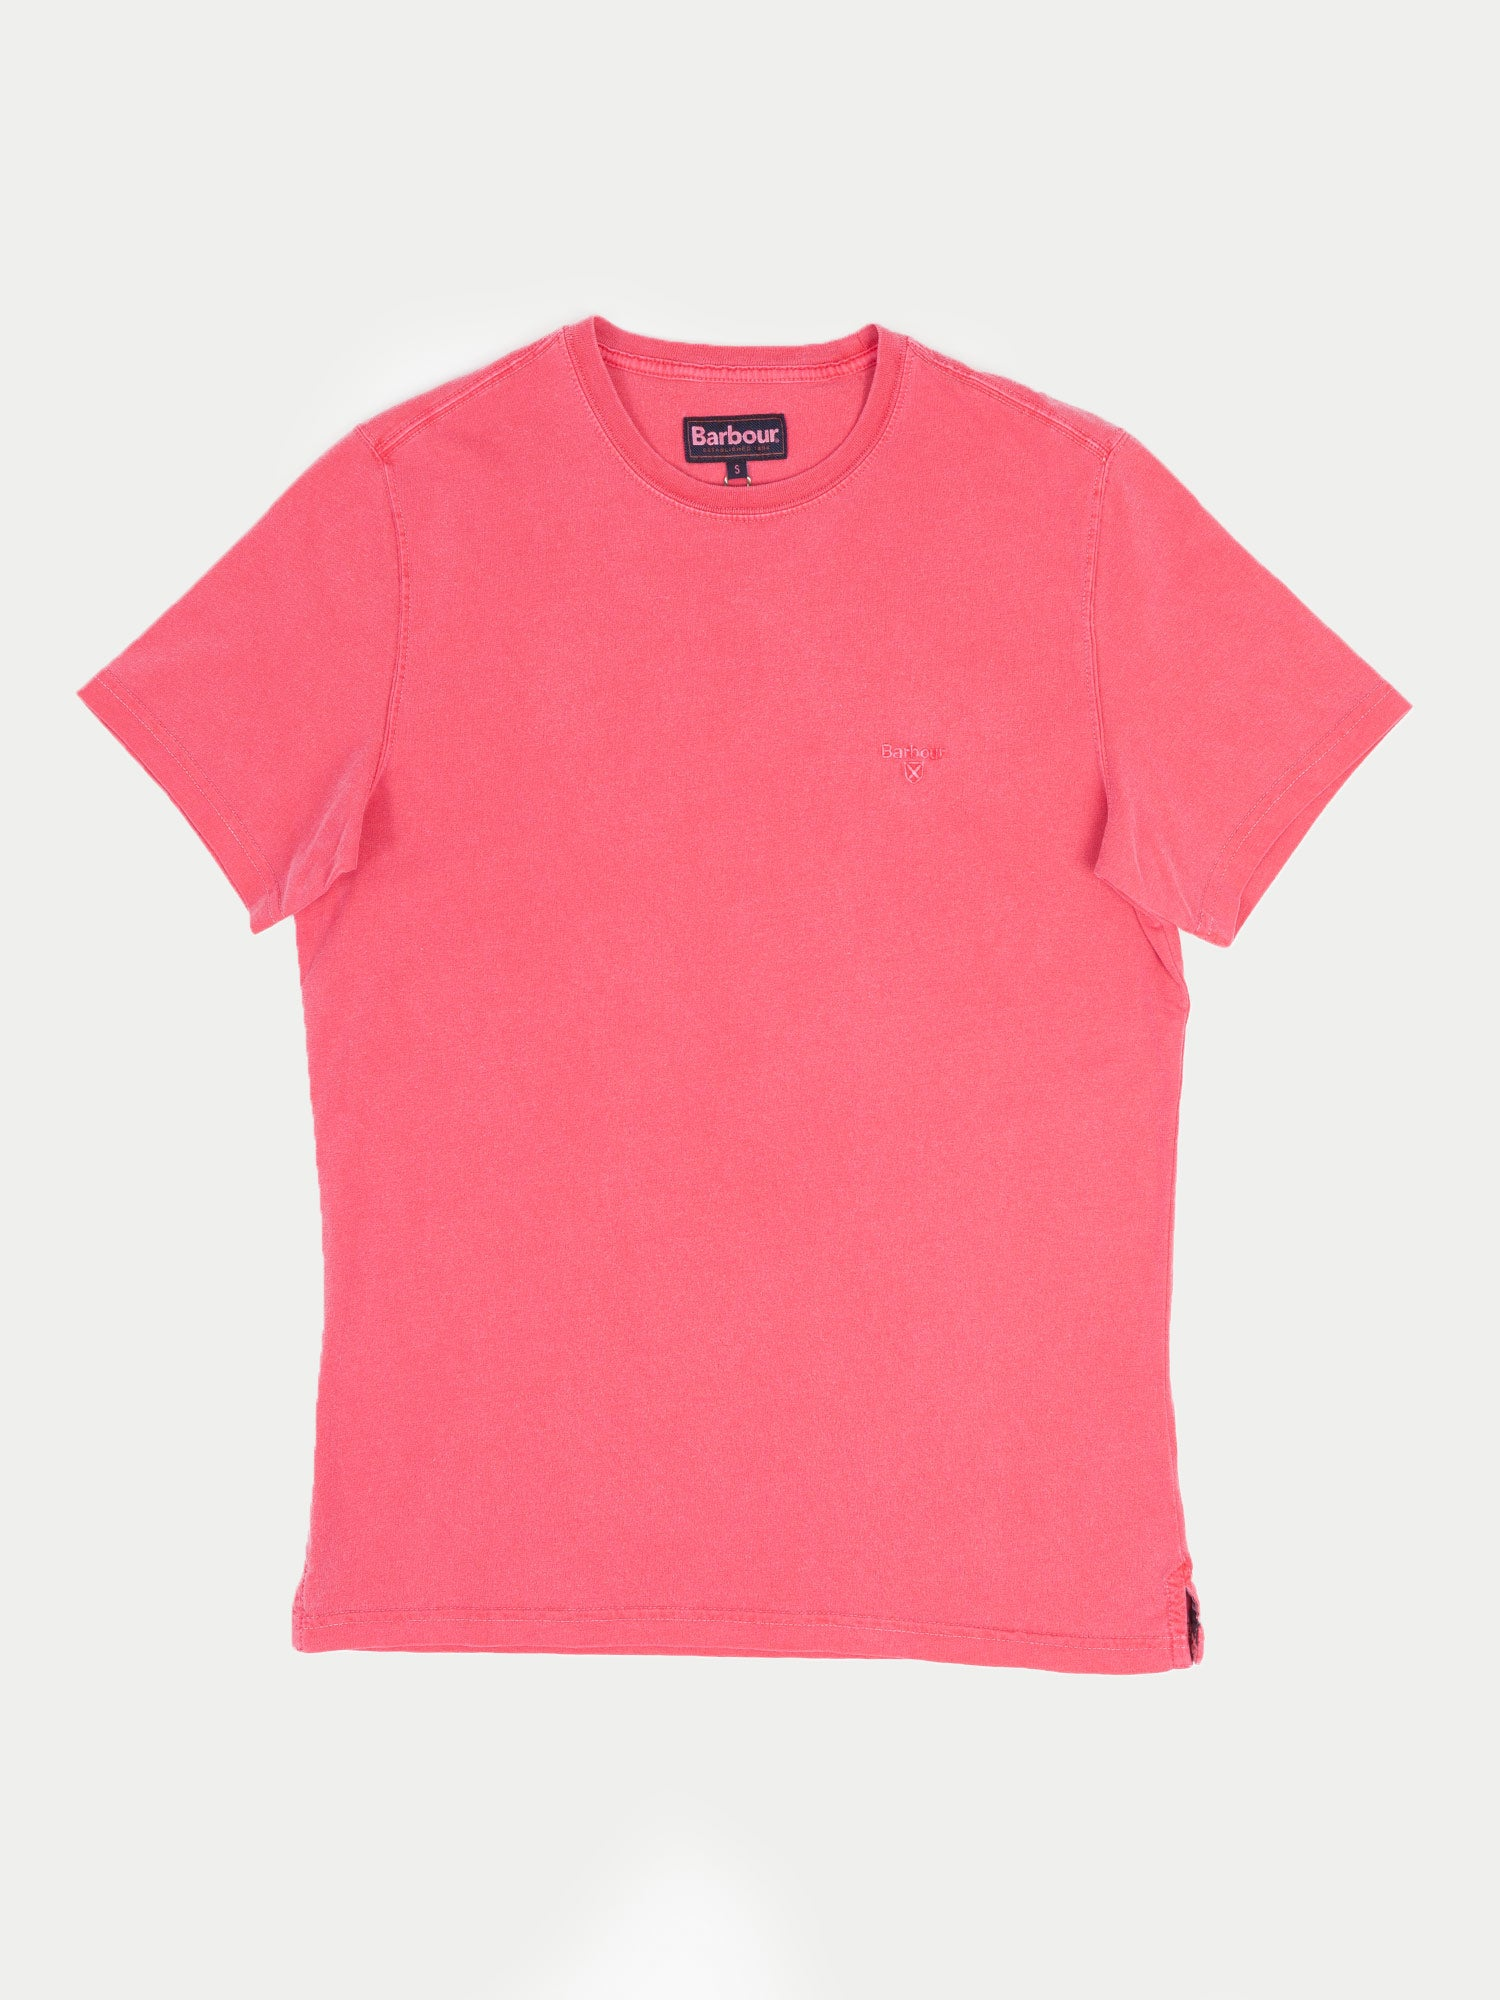 Barbour Garment Dyed T-Shirt (Fuschia)